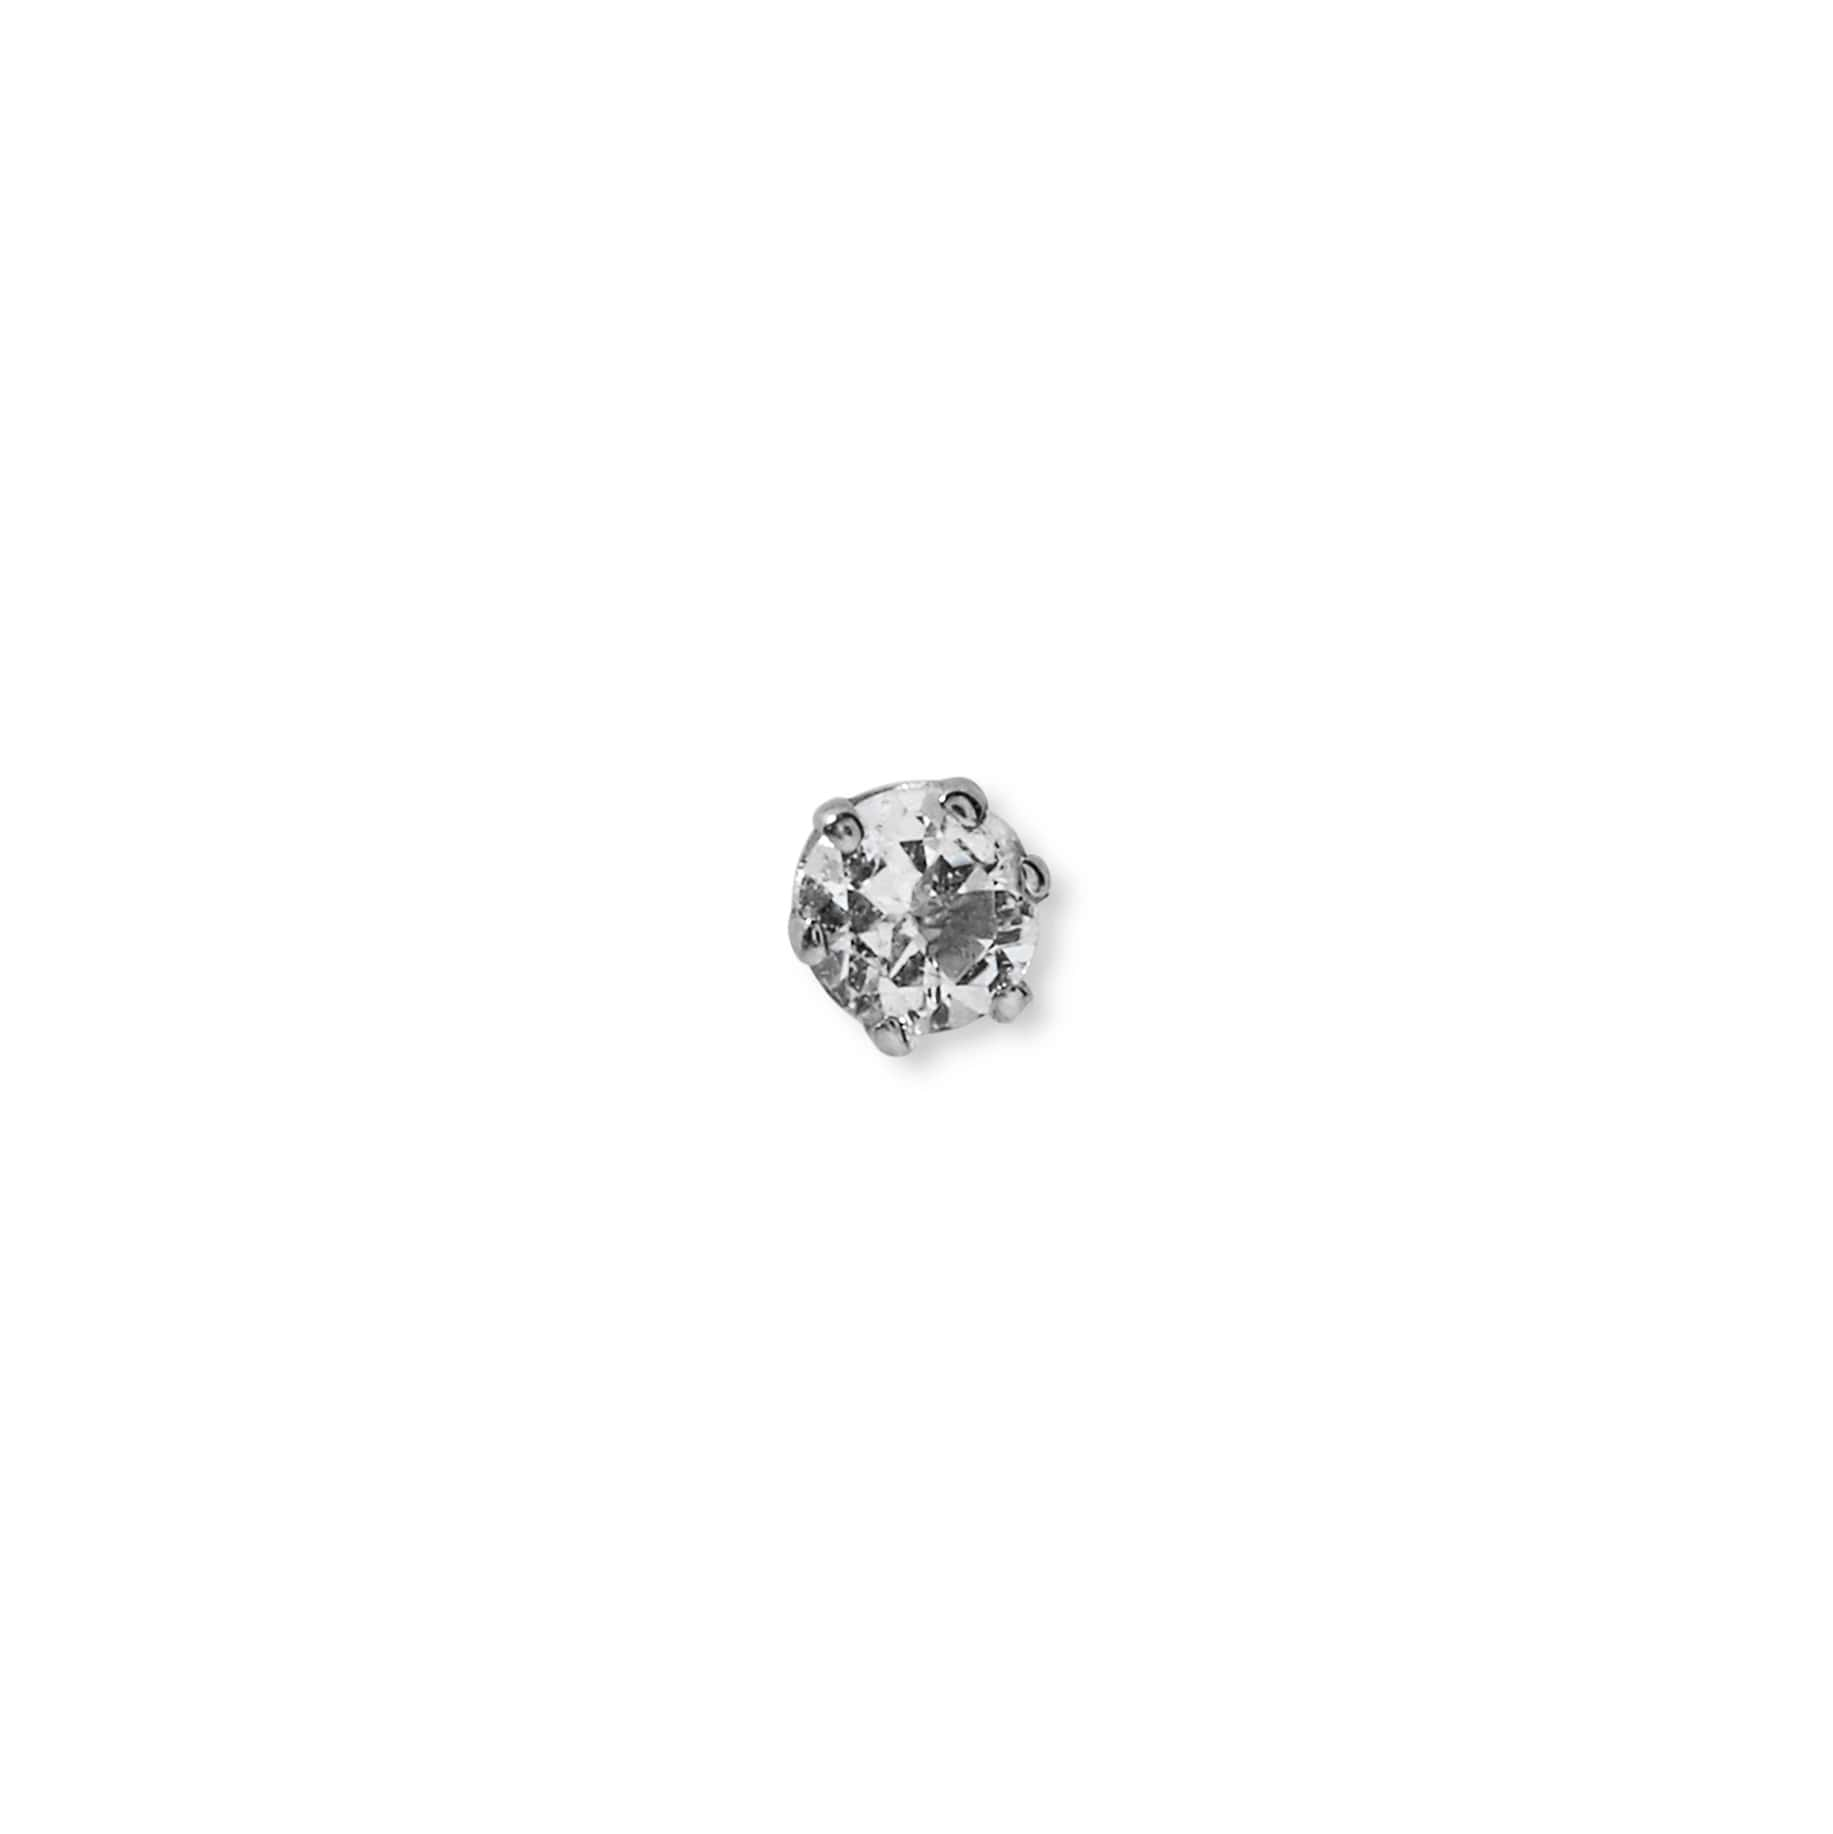 The 9kt White Gold Mini Prong Set Stone Stud